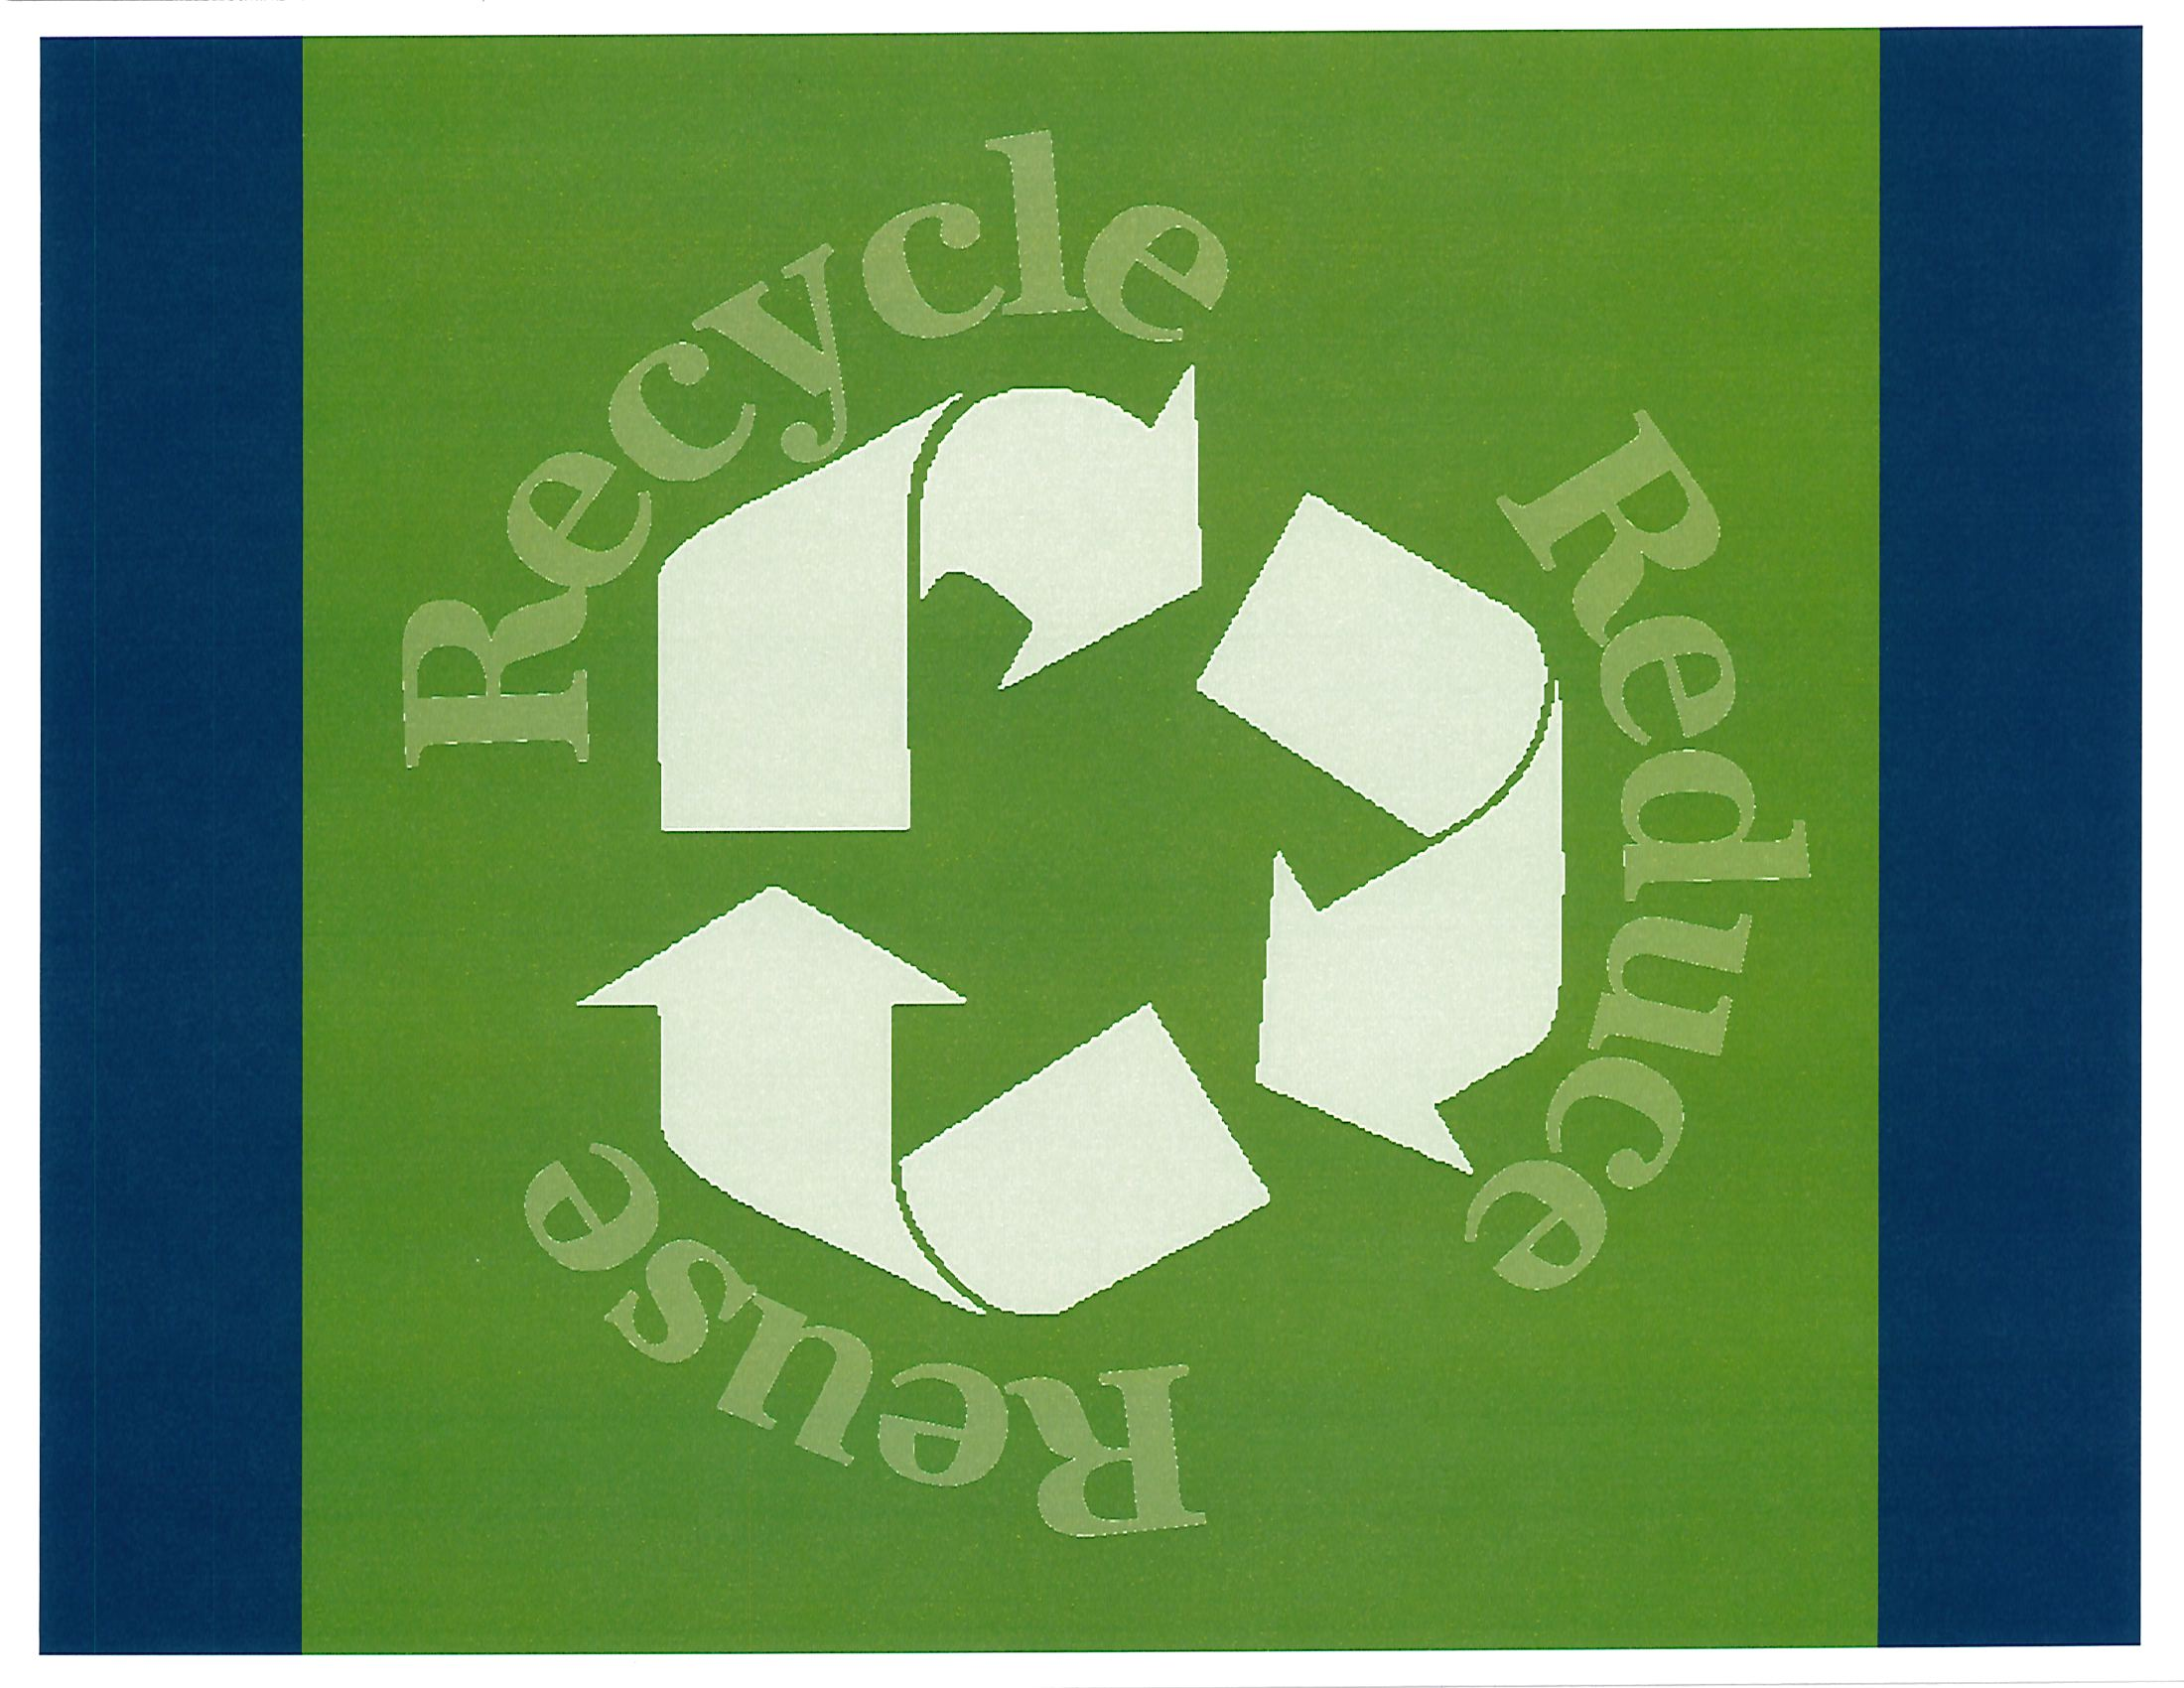 Recycle Pic jpeg